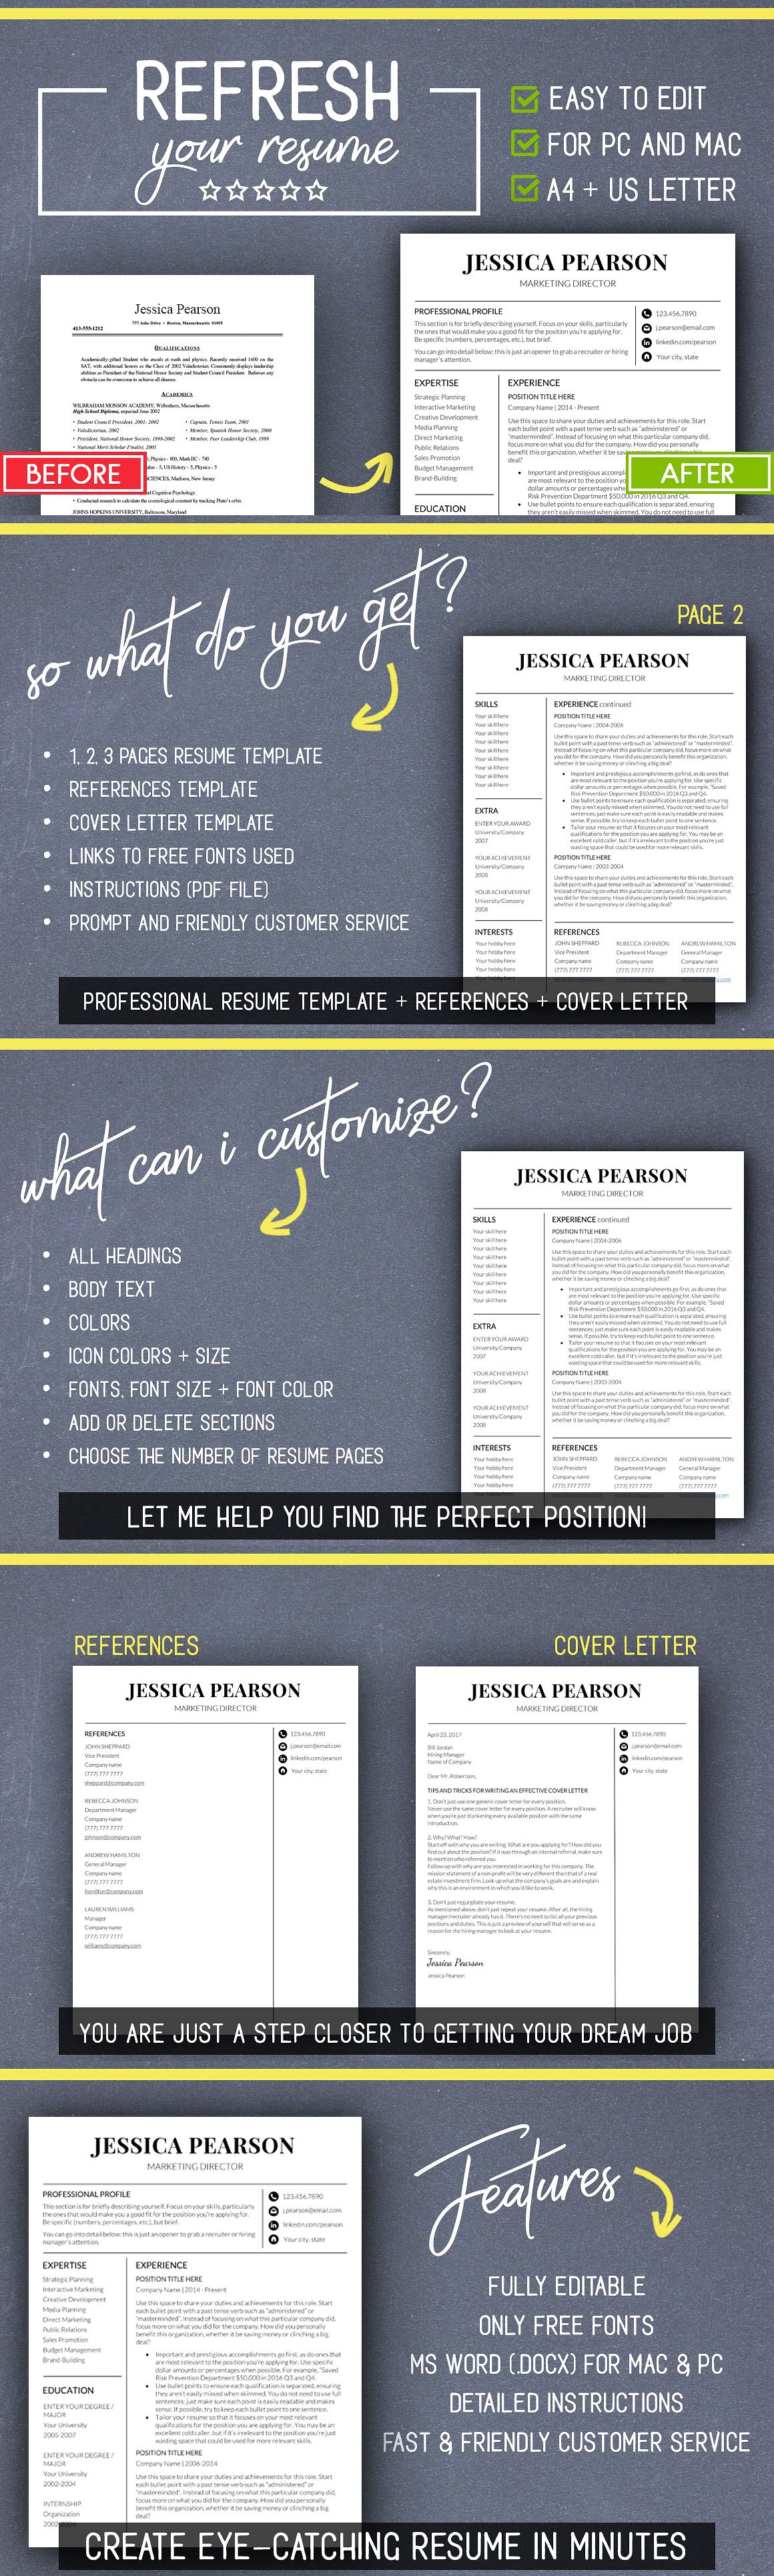 Resume Template Word Mac Clean Resume Template Word Mac Pc  Pinterest  Professional .